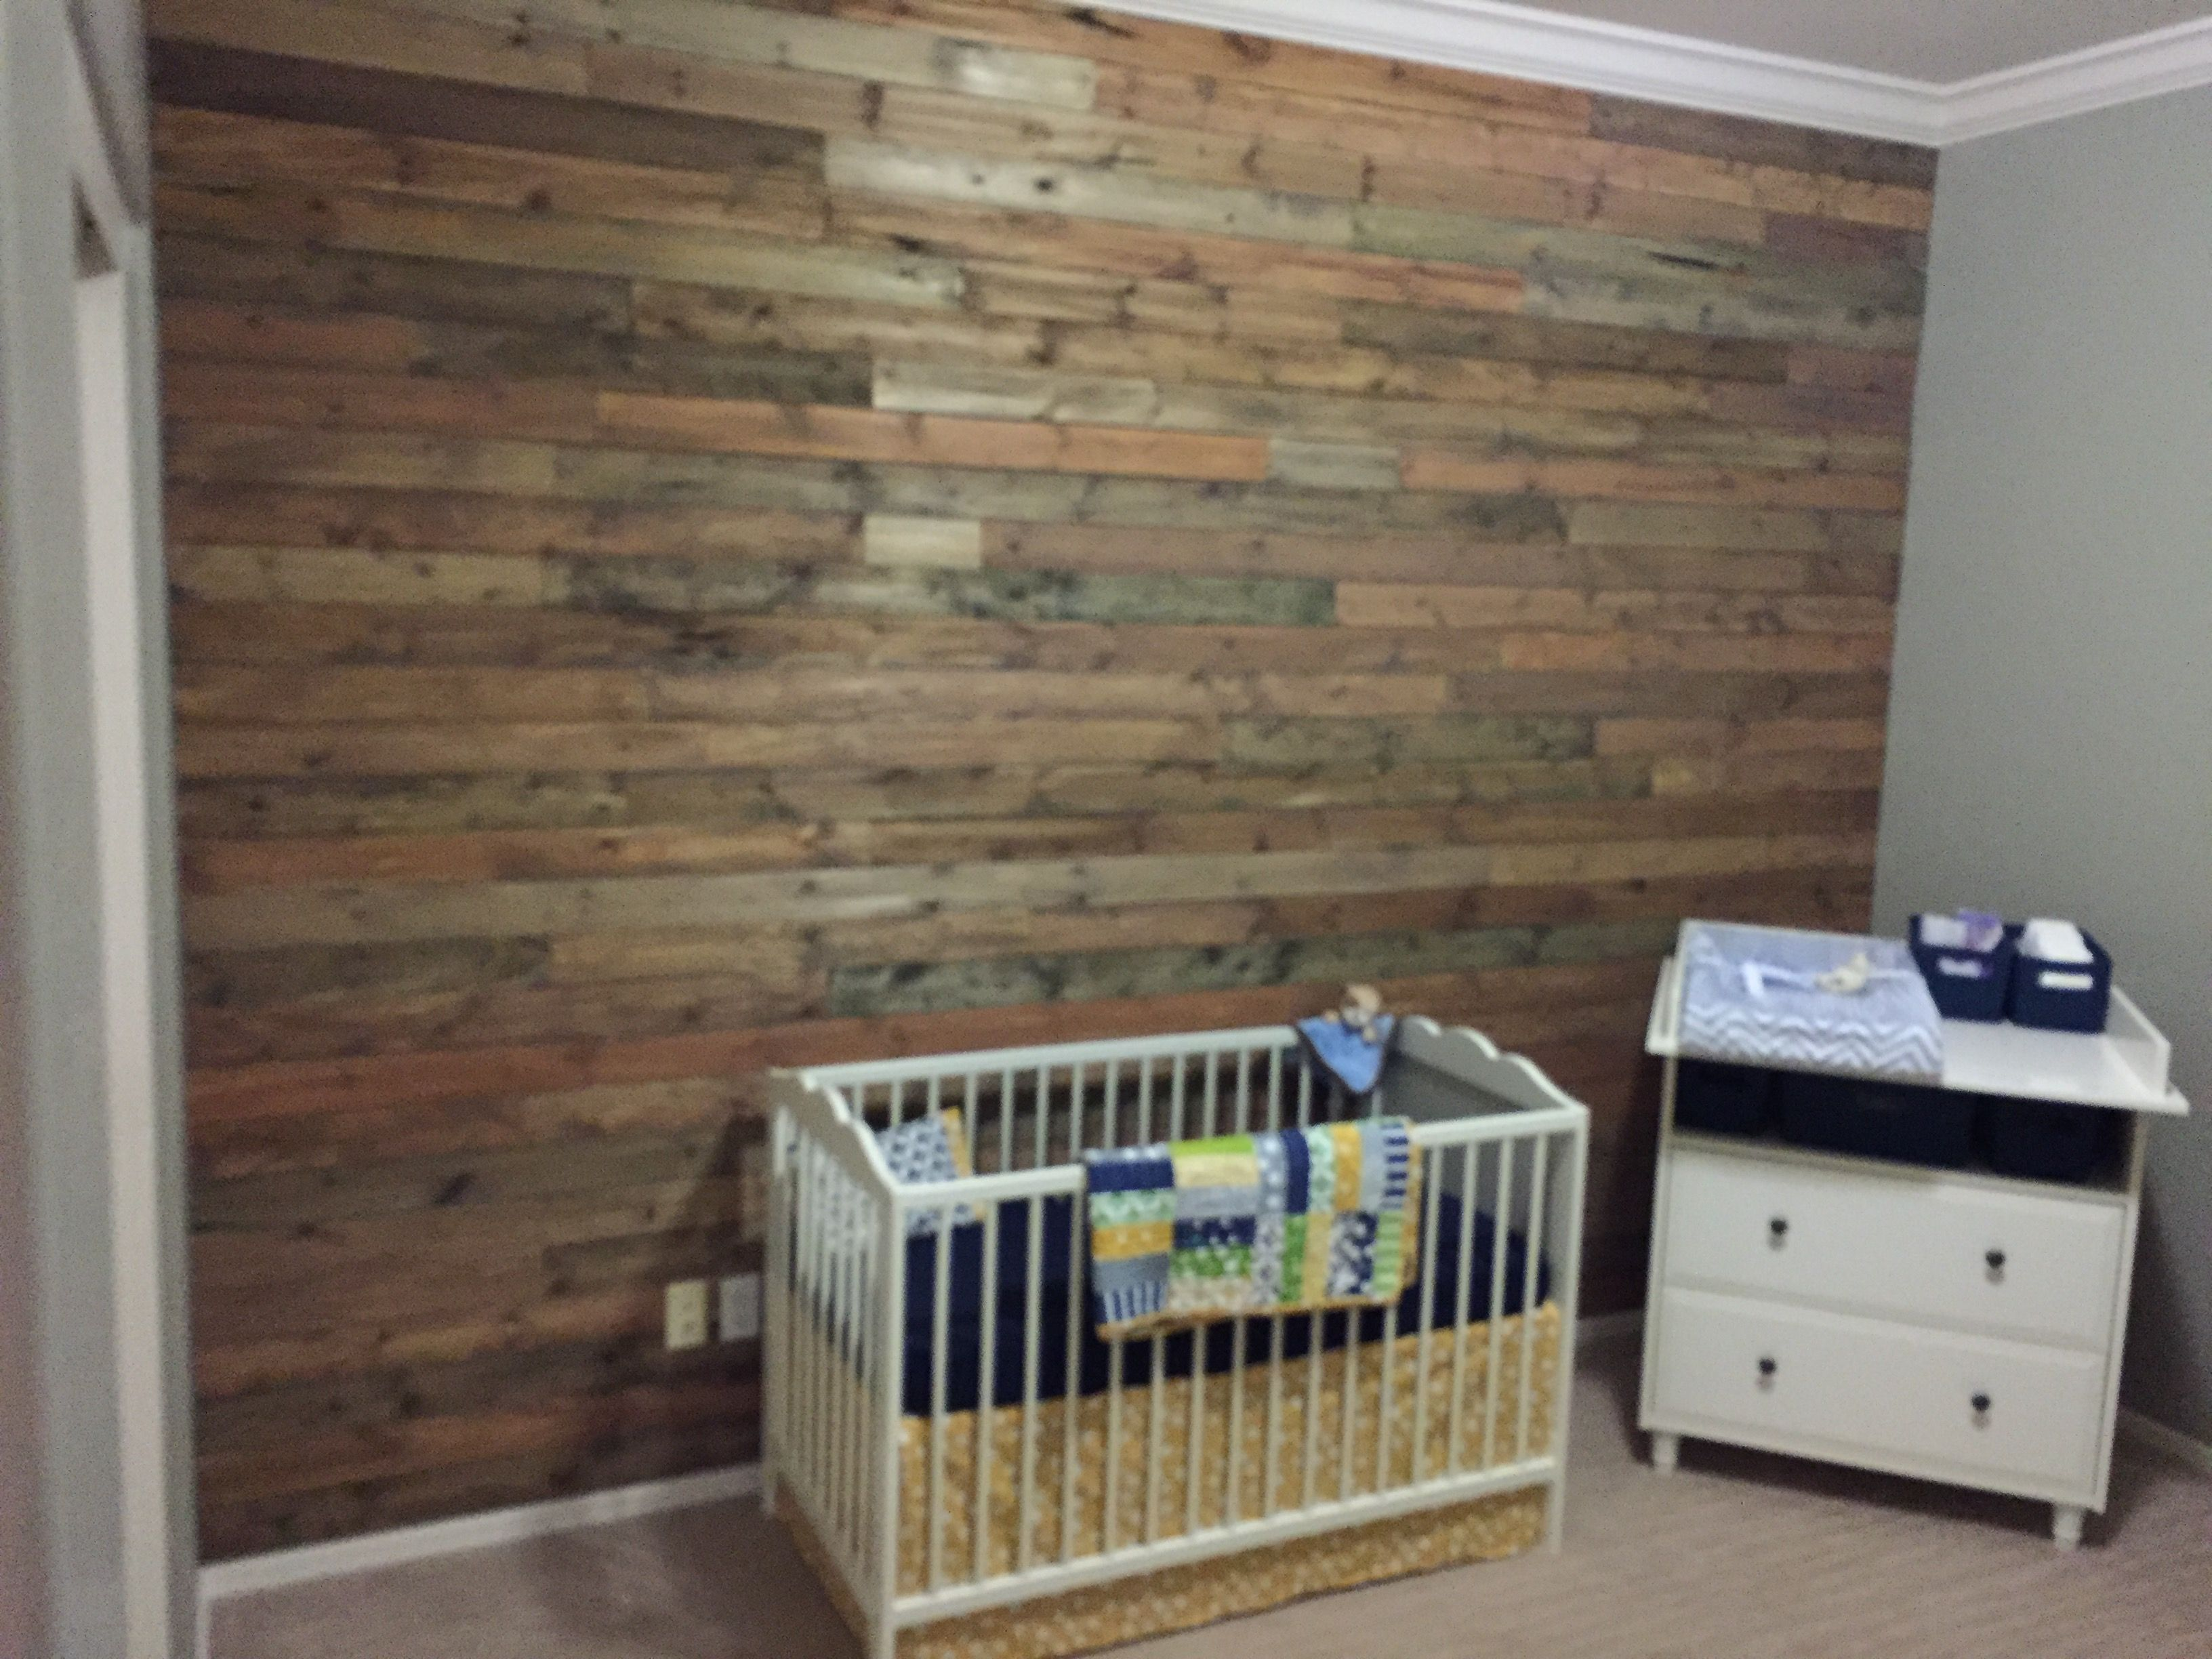 Plank wall completed for my nephew's nursery...great DIY that was actually fairly simple. Just stained and cut the wood then nailed it to the wall!